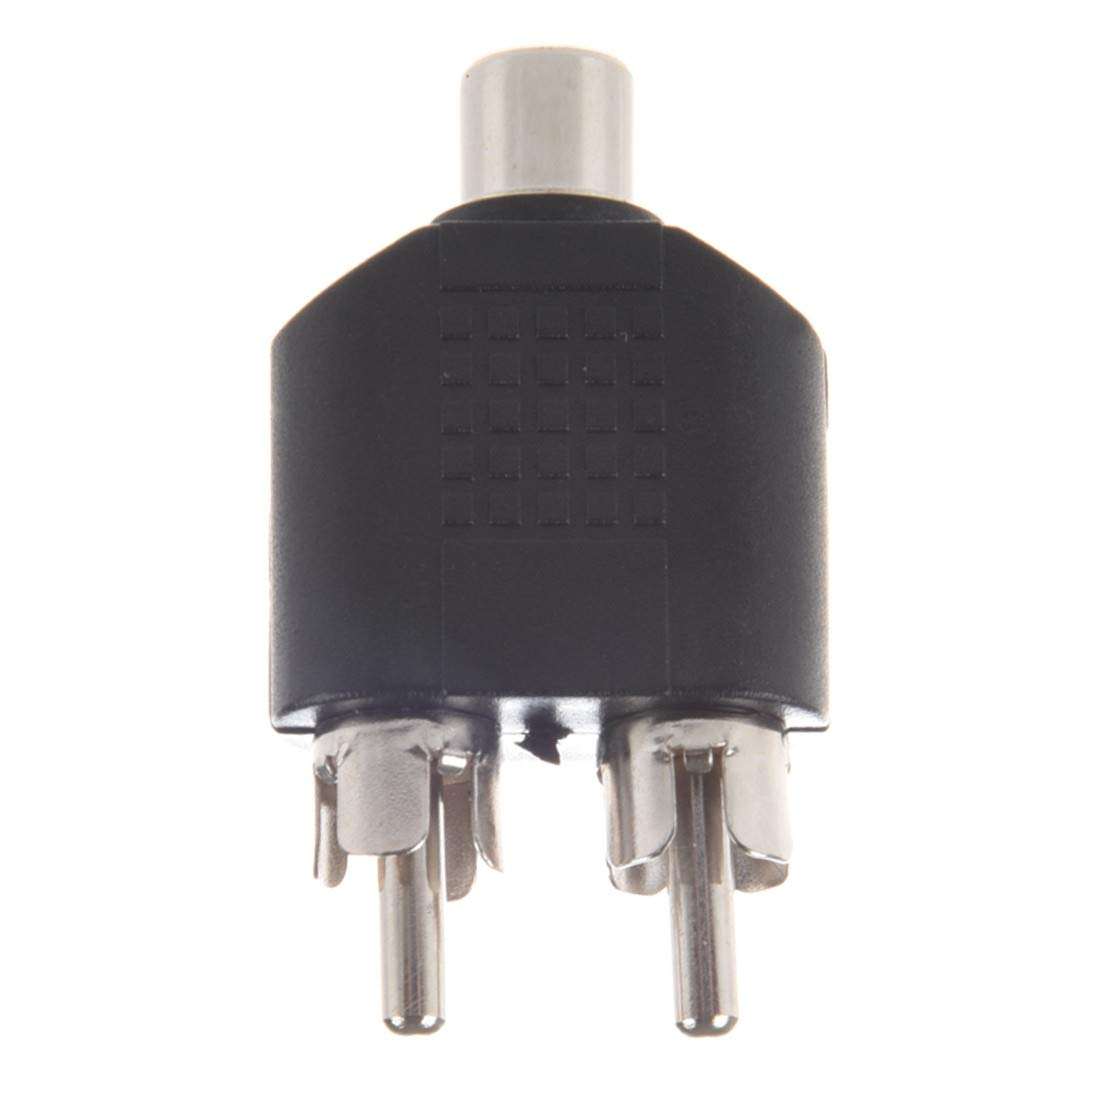 Hosyl RCA Split Adapter for Audio Video AV TV Cable Convert Includes 5xRCA Female to Dual RCA Male